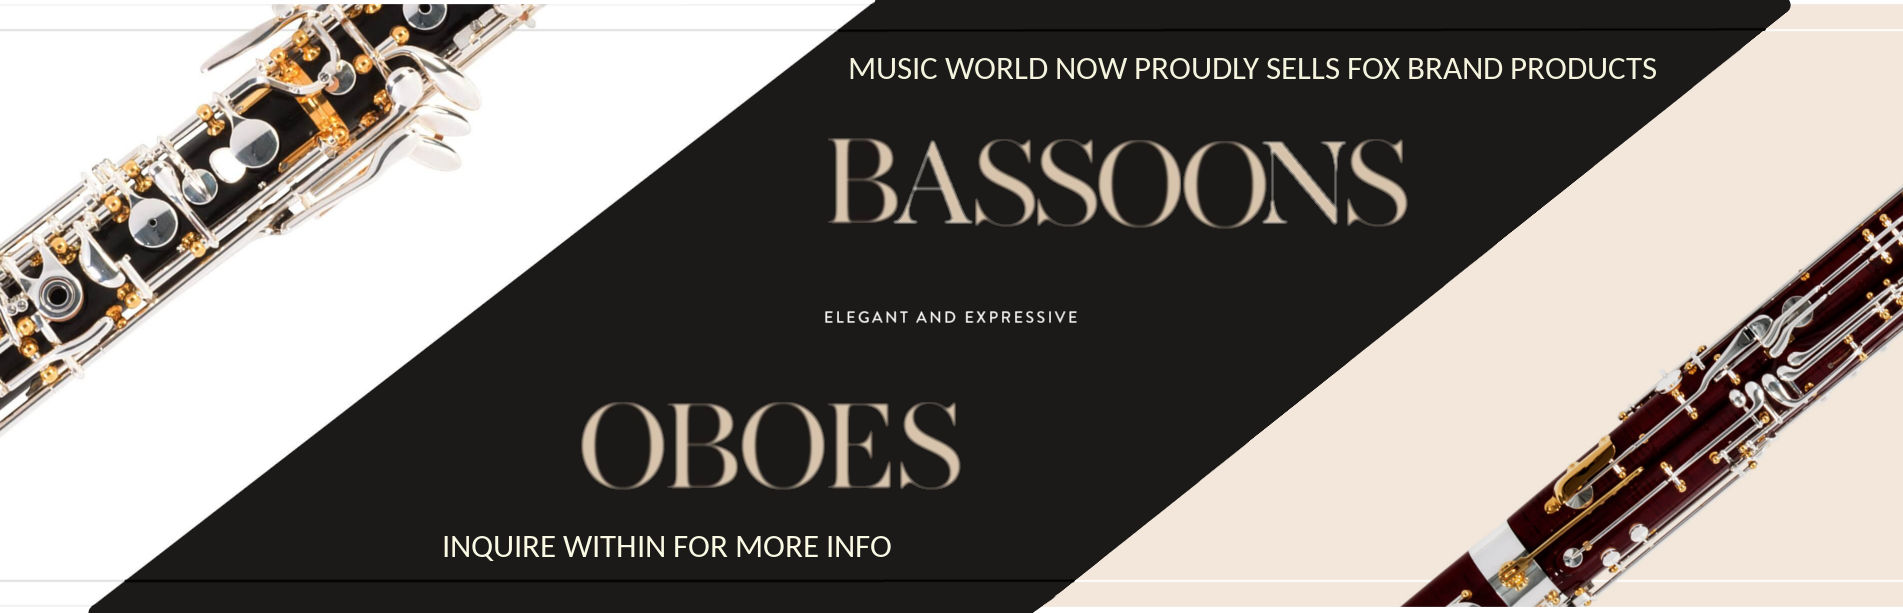 Bassoons-and-Oboes-banner-1